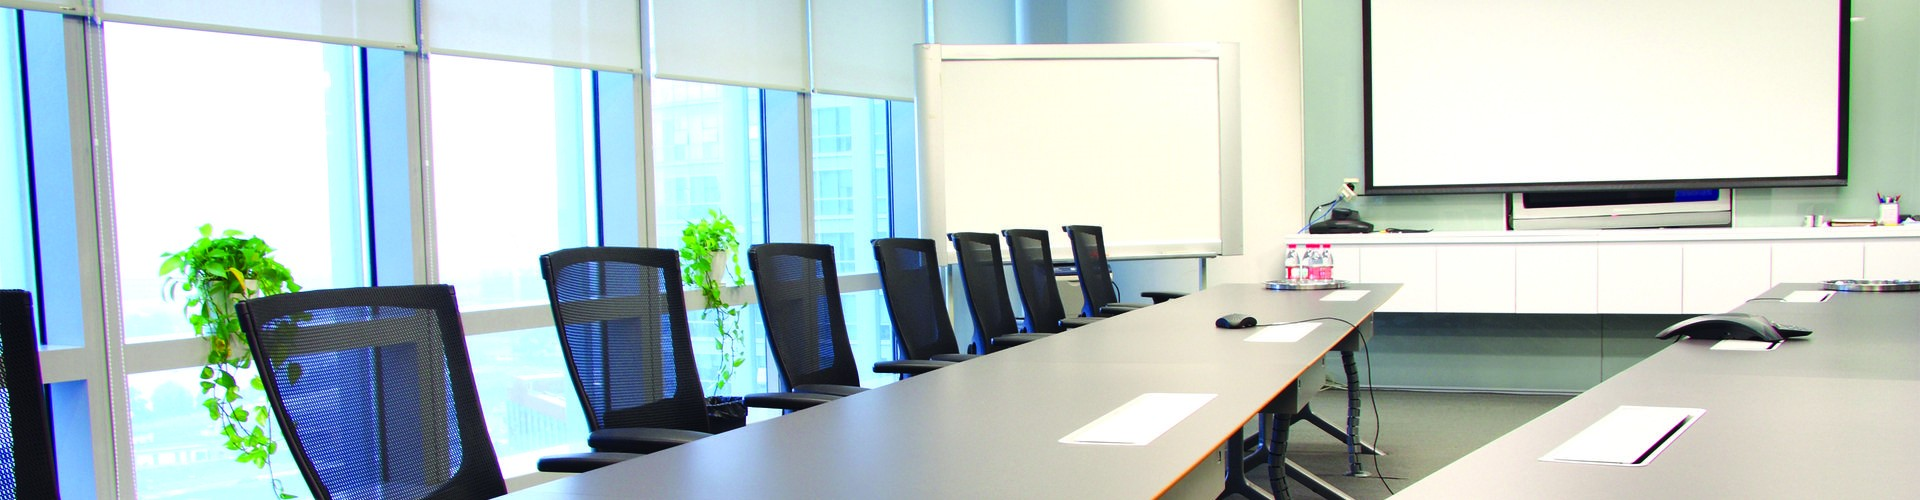 cropped-Boardroom_Table_HRez_cmyk_1920x1080.jpg